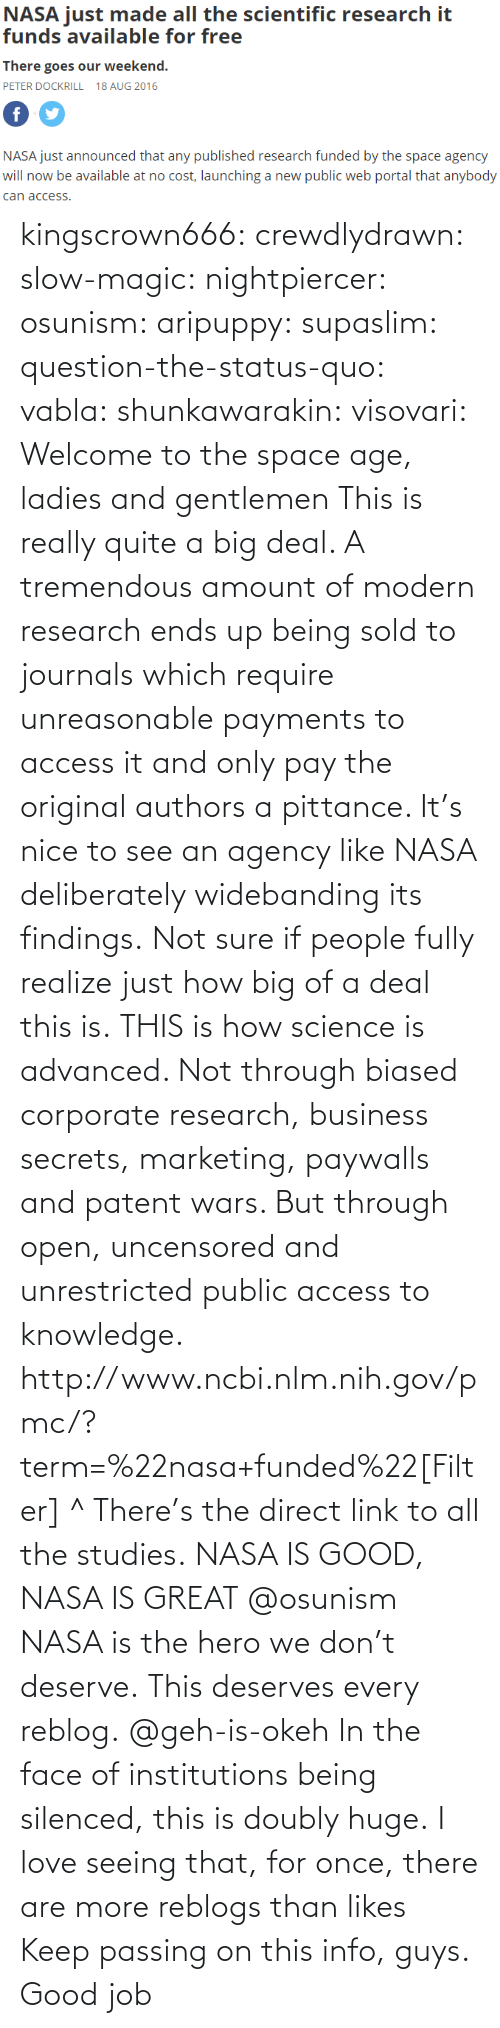 not sure: NASA just mde alll the sciemtiic research i  funds available for free  There goes our weekend.  PETER DOCKRILL 18 AUG 2016  NASA just announced that any published research funded by the space agency  will now be available at no cost, launching a new public web portal that anybody  can access kingscrown666: crewdlydrawn:  slow-magic:   nightpiercer:  osunism:  aripuppy:   supaslim:  question-the-status-quo:  vabla:  shunkawarakin:  visovari:  Welcome to the space age, ladies and gentlemen  This is really quite a big deal. A tremendous amount of modern research ends up being sold to journals which require unreasonable payments to access it and only pay the original authors a pittance. It's nice to see an agency like NASA deliberately widebanding its findings.  Not sure if people fully realize just how big of a deal this is.  THIS is how science is advanced. Not through biased corporate research, business secrets, marketing, paywalls and patent wars. But through open, uncensored and unrestricted public access to knowledge.  http://www.ncbi.nlm.nih.gov/pmc/?term=%22nasa+funded%22[Filter] ^ There's the direct link to all the studies.  NASA IS GOOD, NASA IS GREAT  @osunism   NASA is the hero we don't deserve.   This deserves every reblog.  @geh-is-okeh   In the face of institutions being silenced, this is doubly huge.   I love seeing that, for once, there are more reblogs than likes Keep passing on this info, guys. Good job